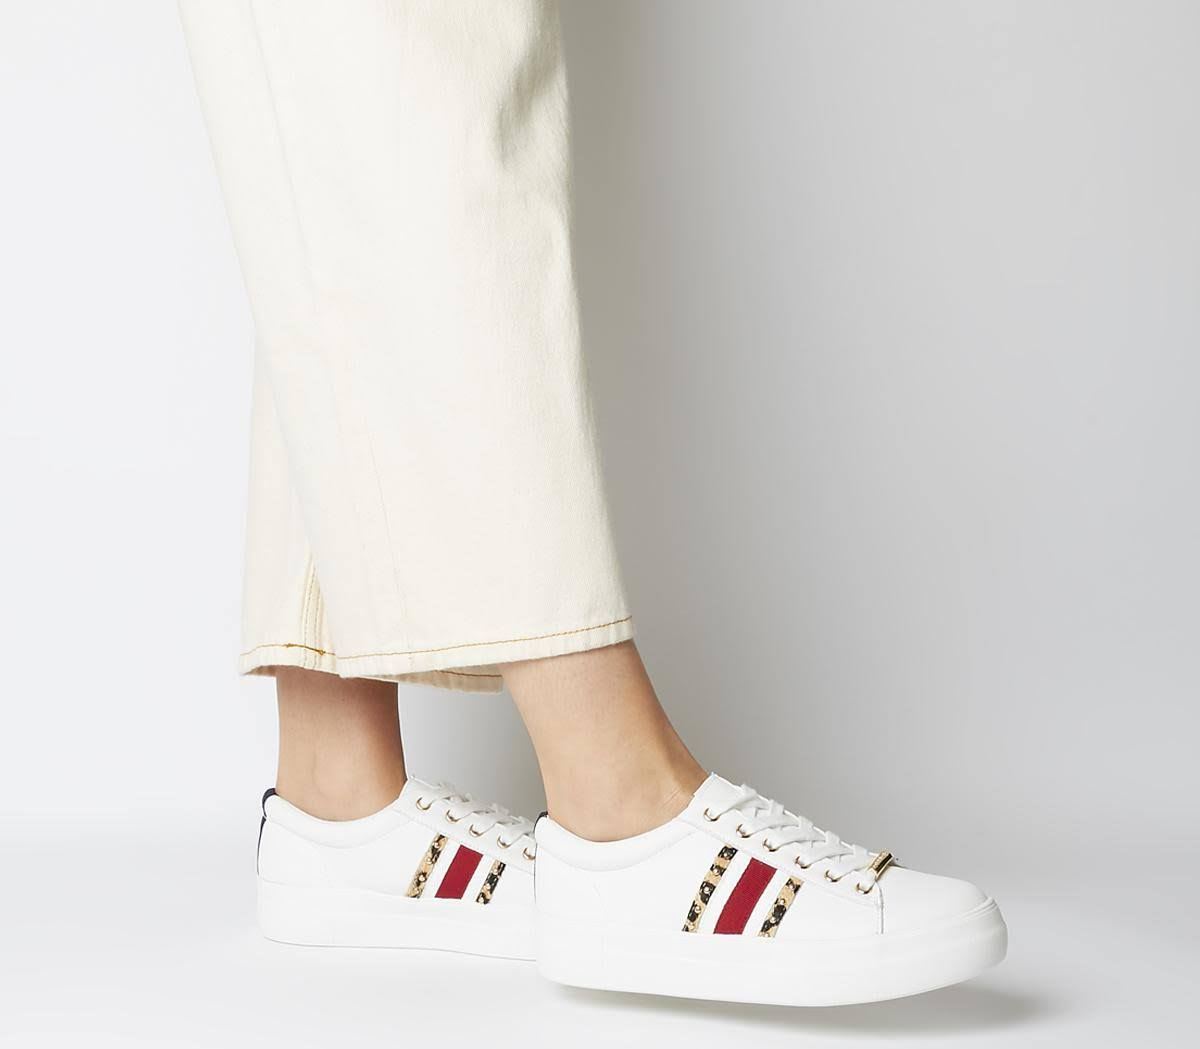 Office Freestyle Lace Up Trainers White Red Navy